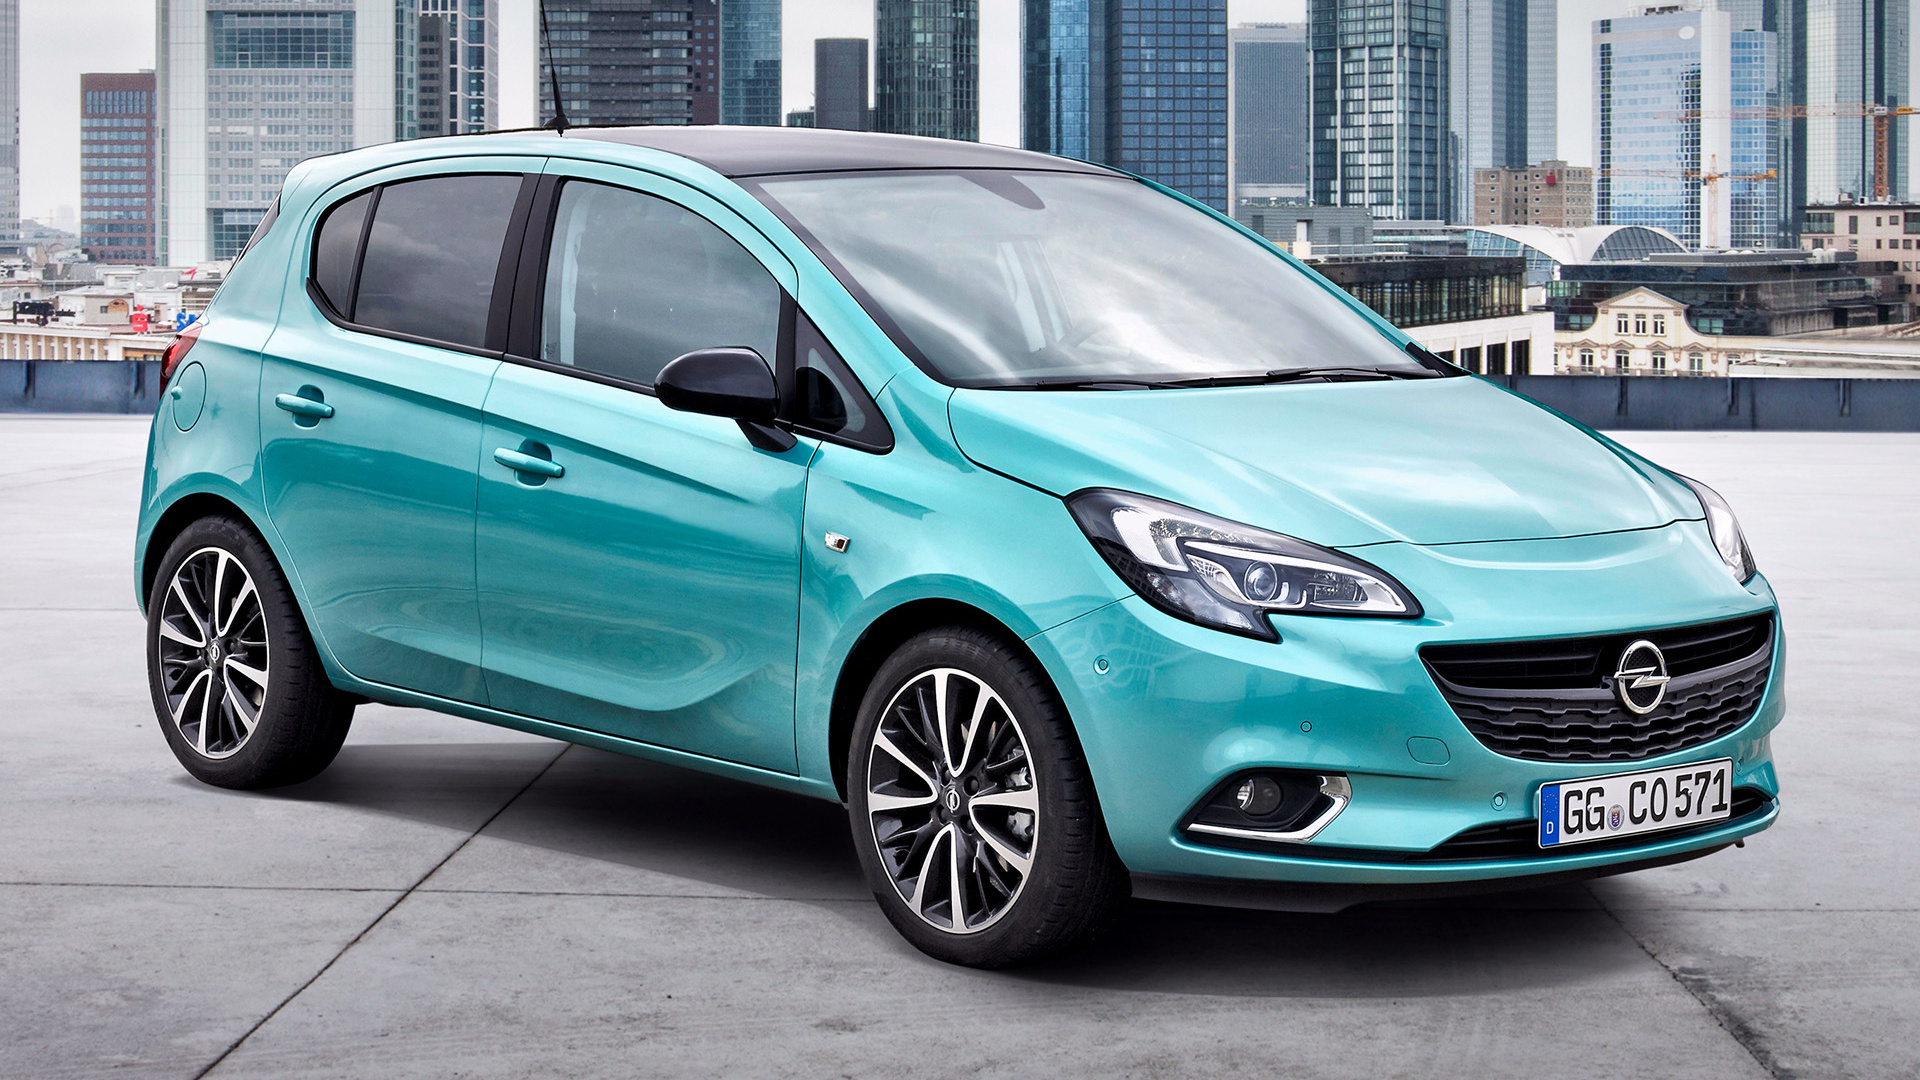 2017 opel corsa 5 door car photos catalog 2018